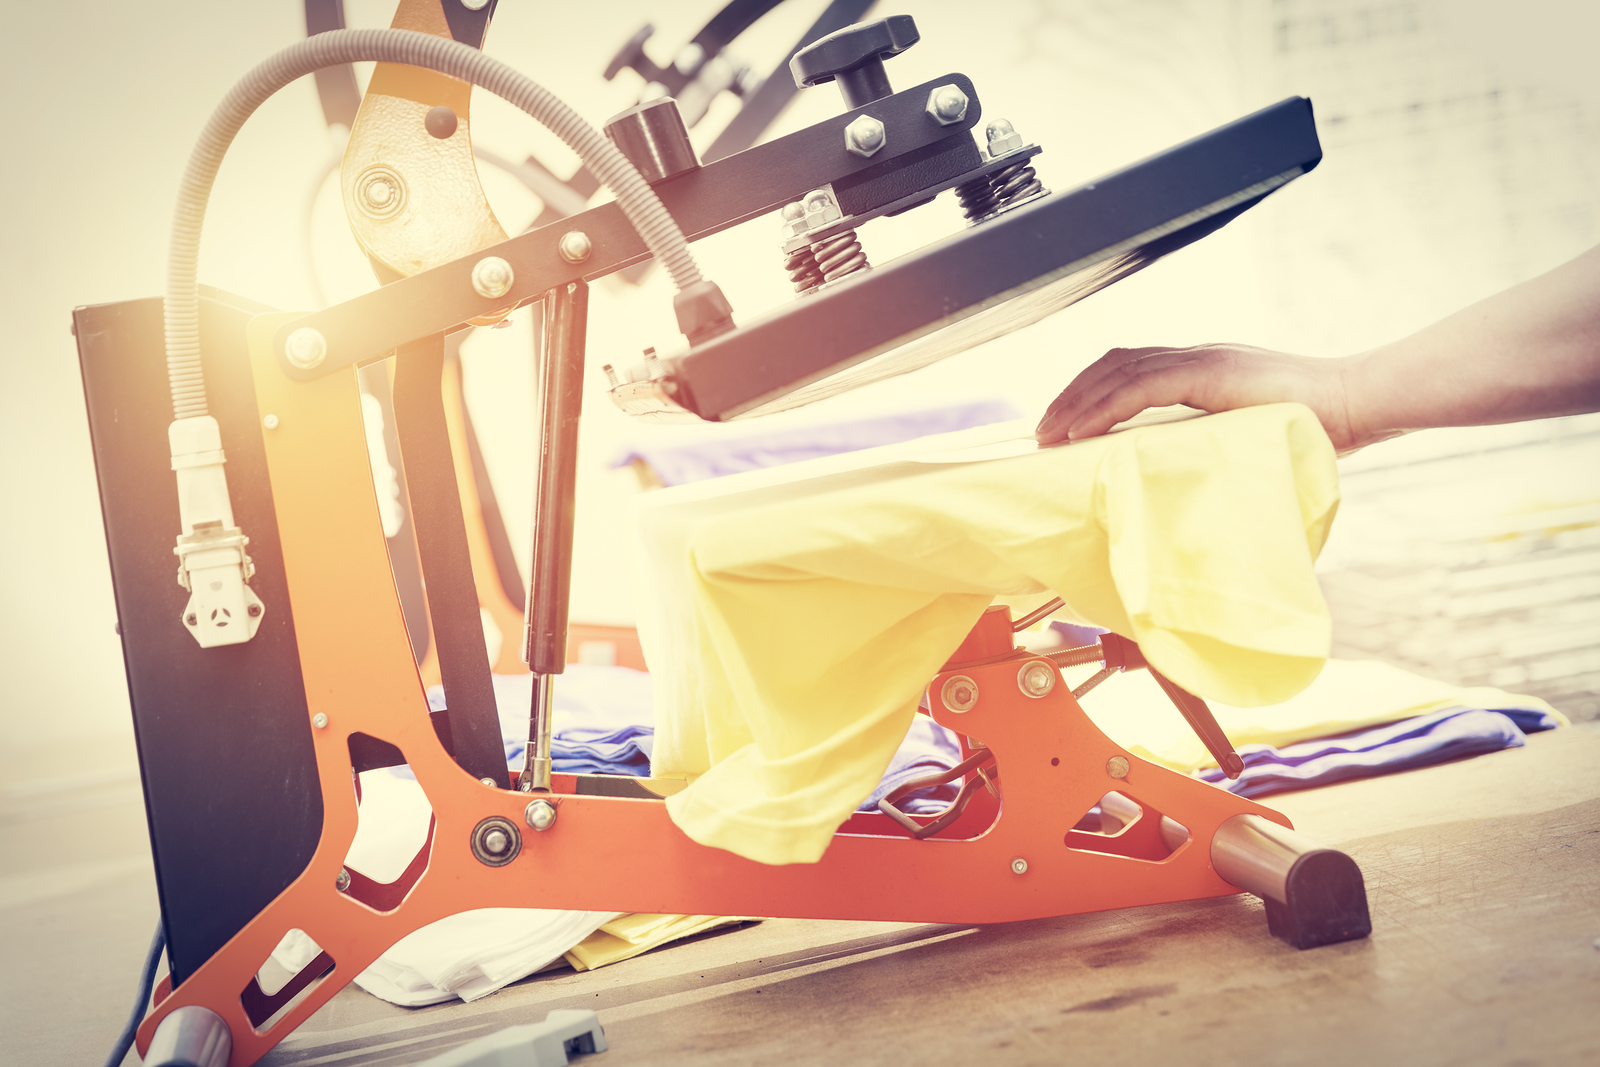 Jersey Screen Printing - What Is It and How Does It Work